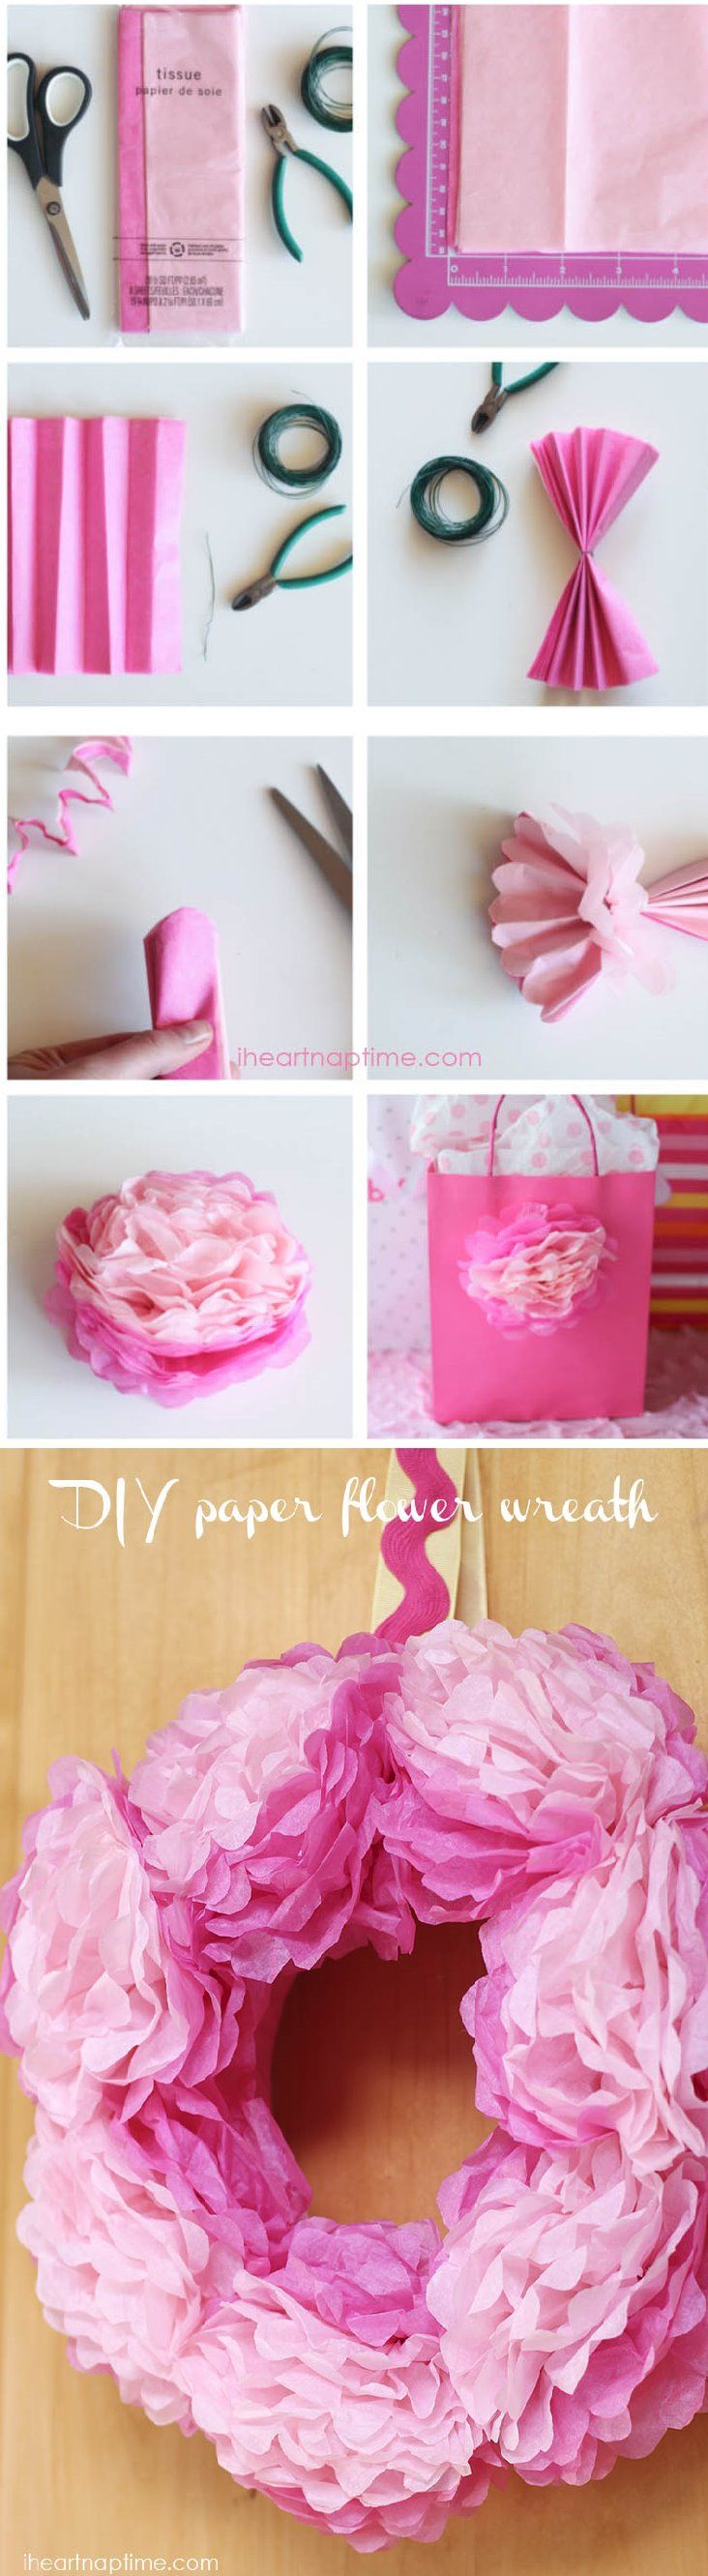 How To Make Tissue Paper Flowers Creative Ideas Pinterest